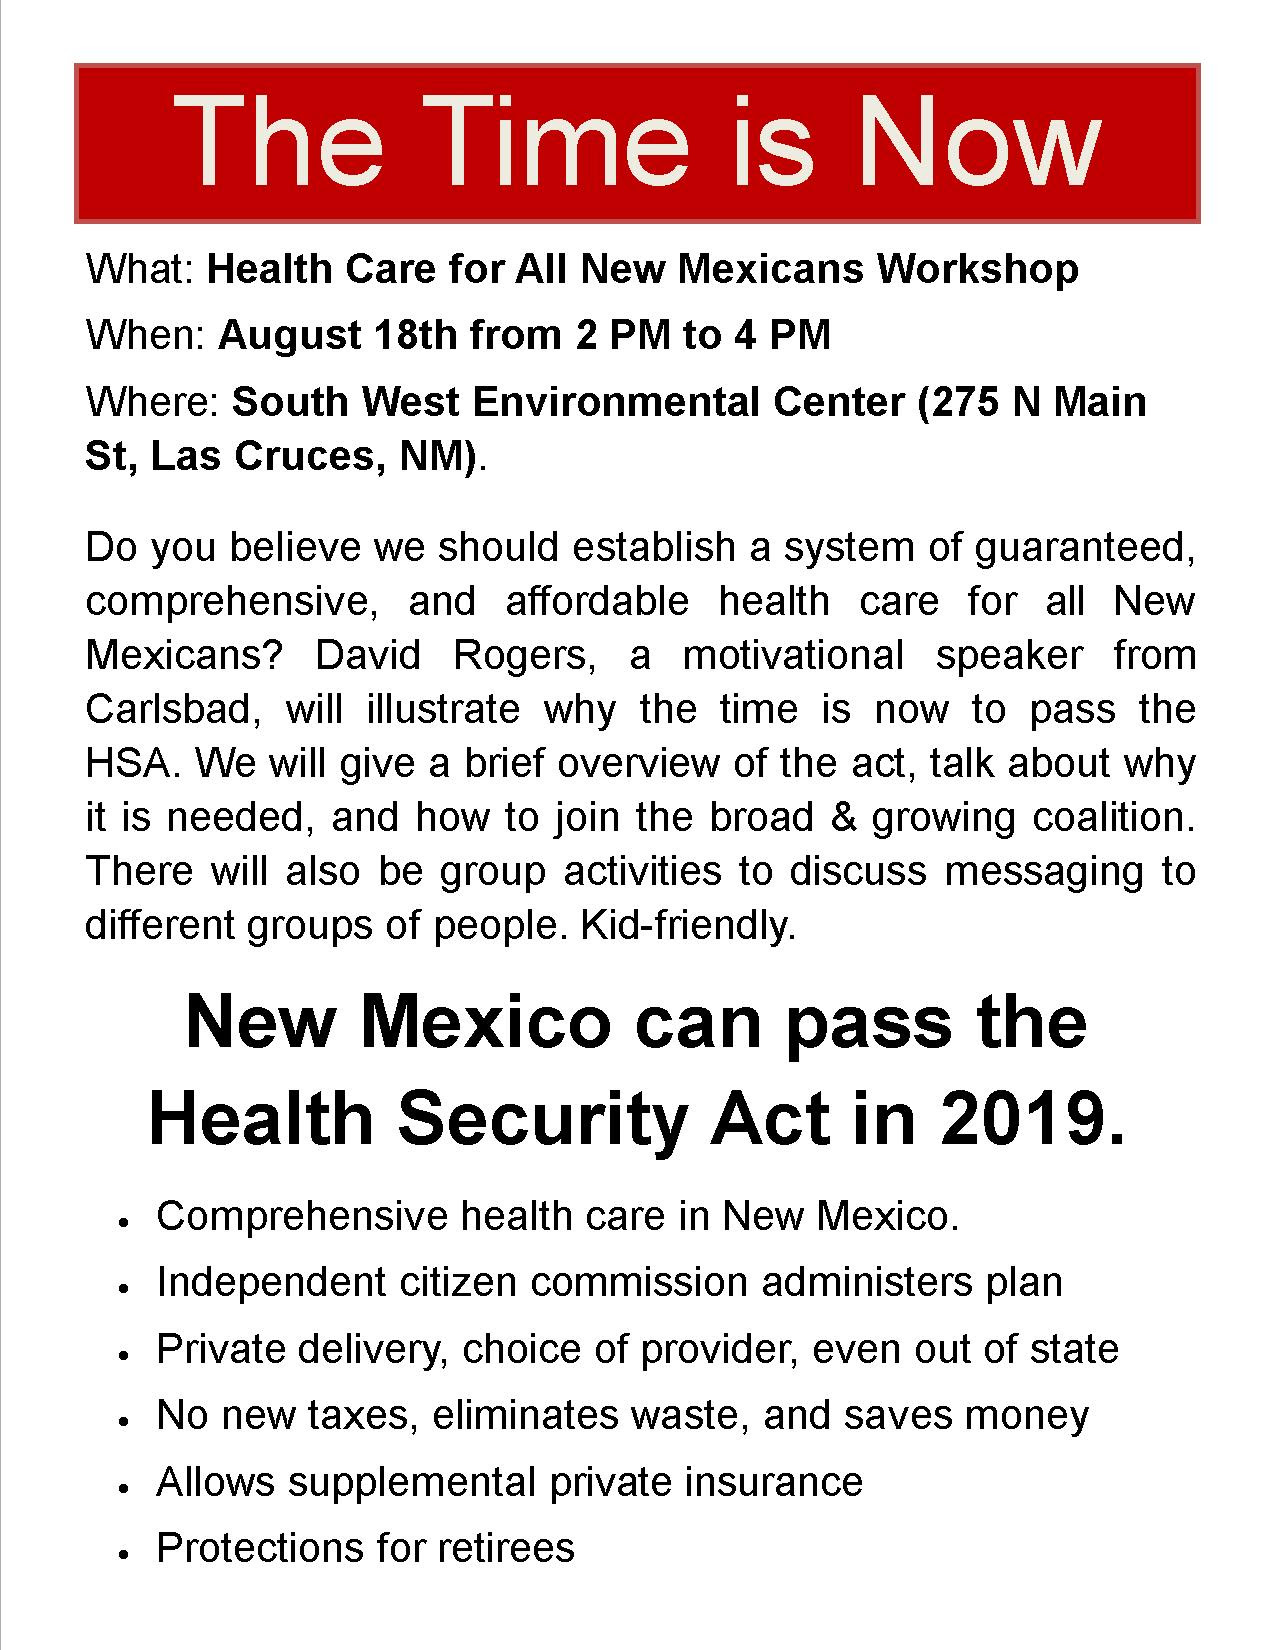 The Time Is Now: Healthcare For All New Mexicans @ SWEC | Las Cruces | New Mexico | United States